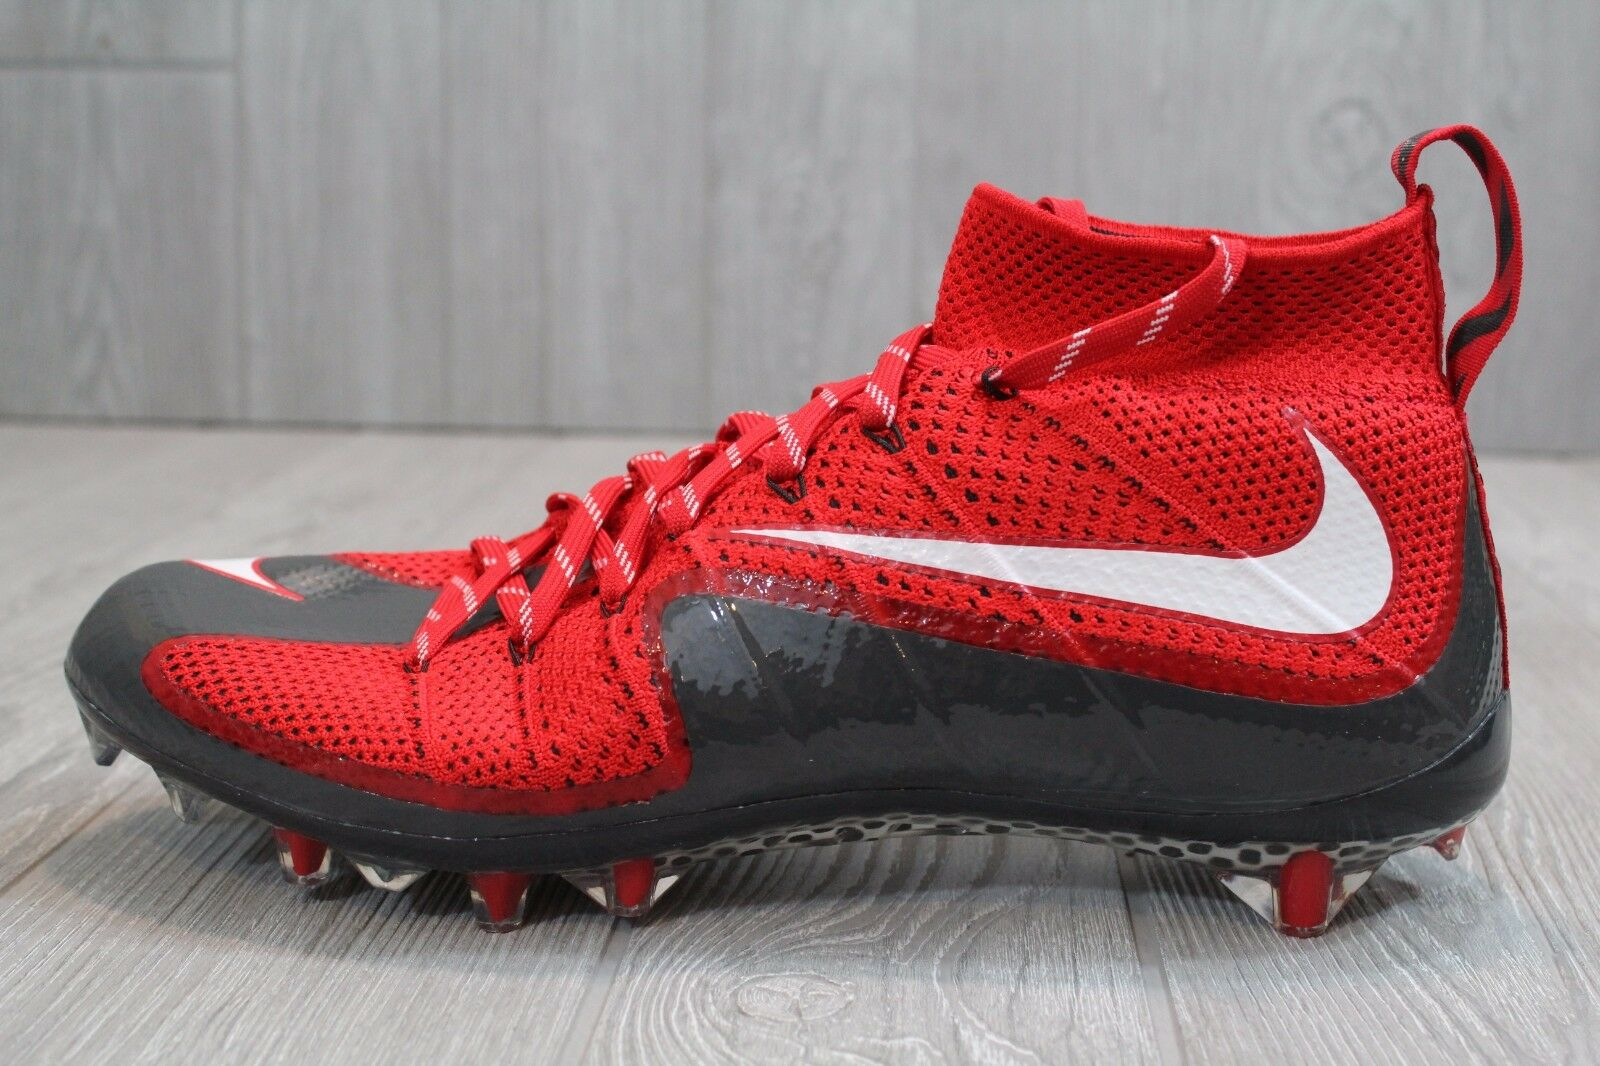 22 Nuove Flyknit Nike Vapore Intoccabile Pro Flyknit Nuove Football  tte Rosso 707455-630 10 12 c495c0